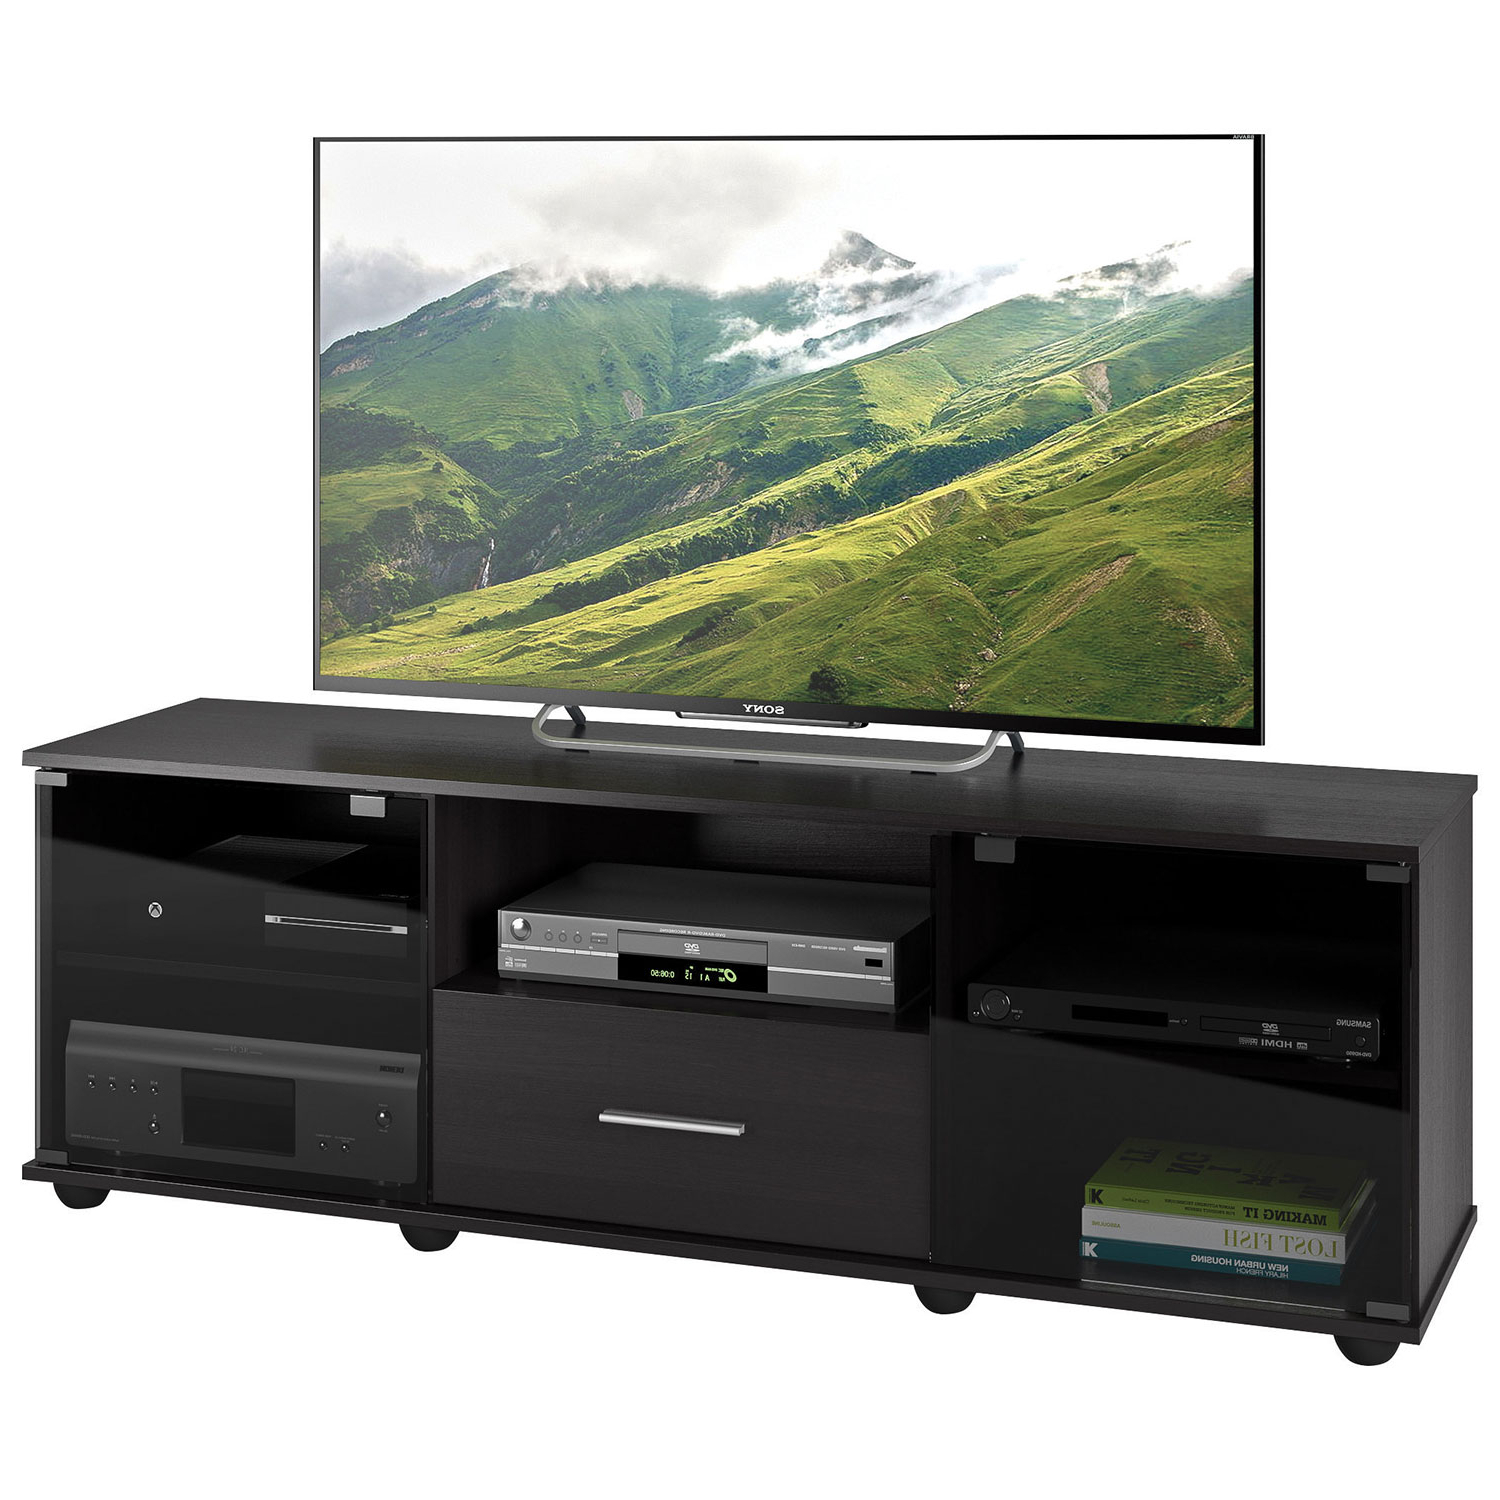 "Bench Tv Stands Intended For Most Recent Corliving Fernbrook 70"" Tv Stand – Black : Tv Stands – Best Buy Canada (View 4 of 20)"